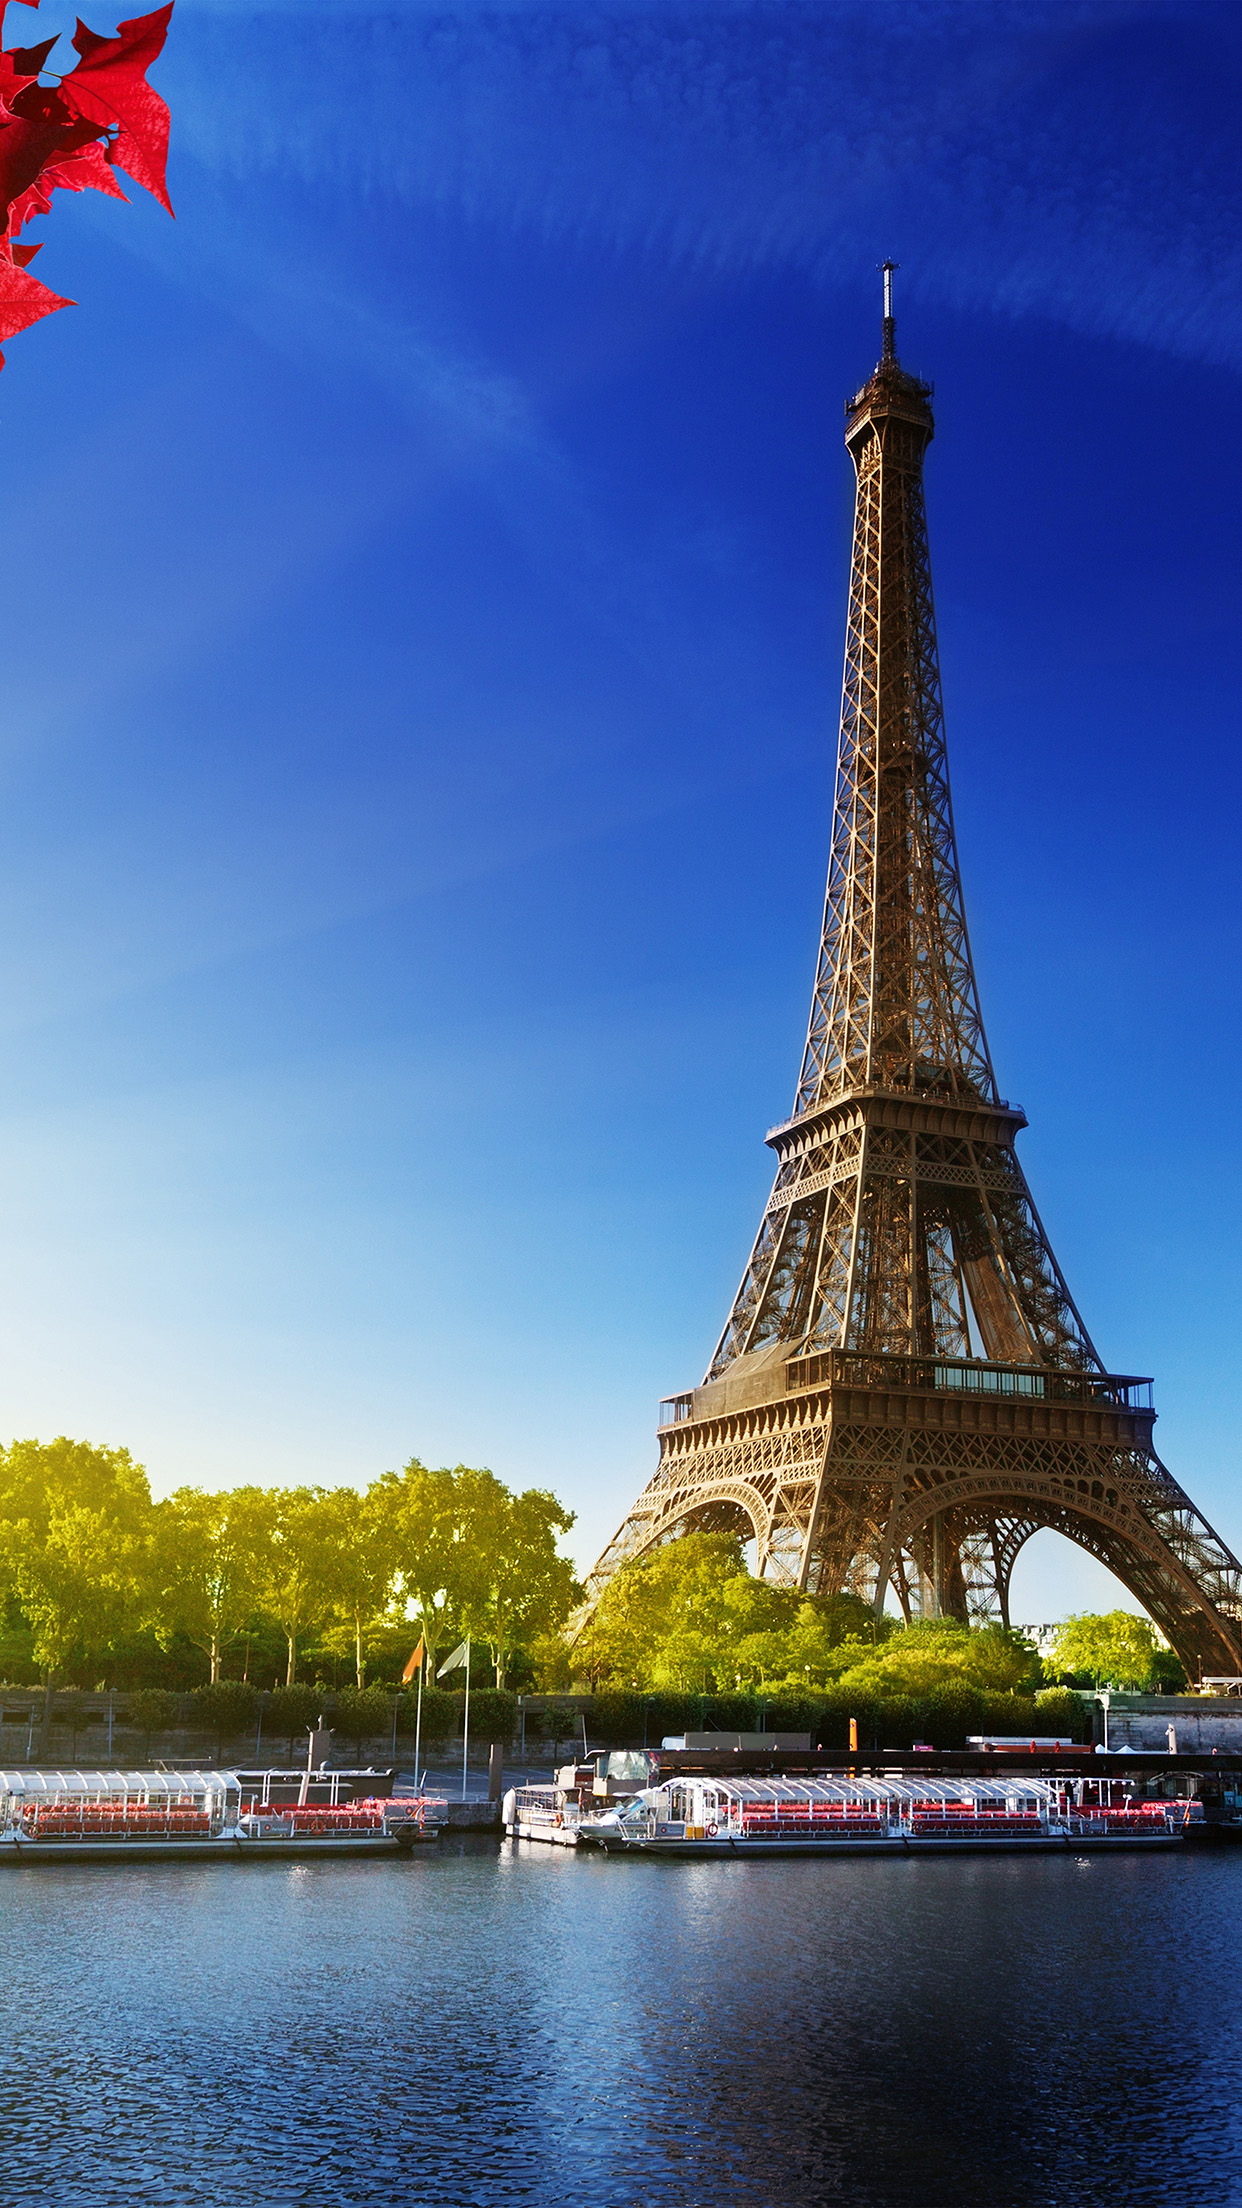 Cute Eiffel Tower Wallpaper For Iphone For Iphone X Iphonexpapers